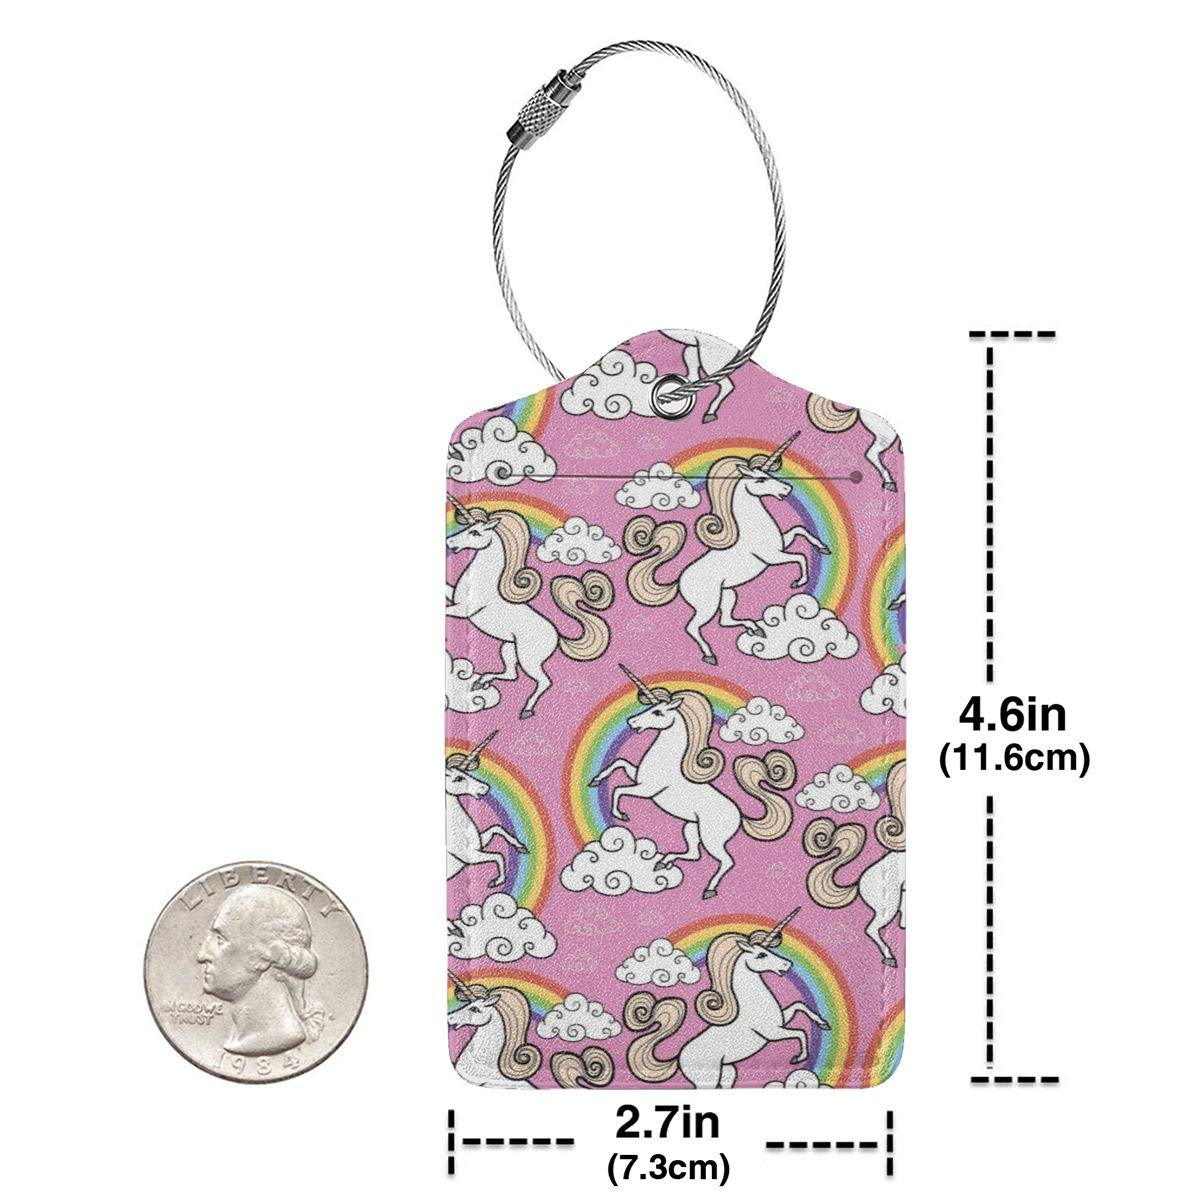 Leather Luggage Tags Full Privacy Cover and Stainless Steel Loop 1 2 4 Pcs Set Key Tags for Christmas Birthday Couples Gift Magic Unicorn Rainbow 2.7 x 4.6 Blank Tag